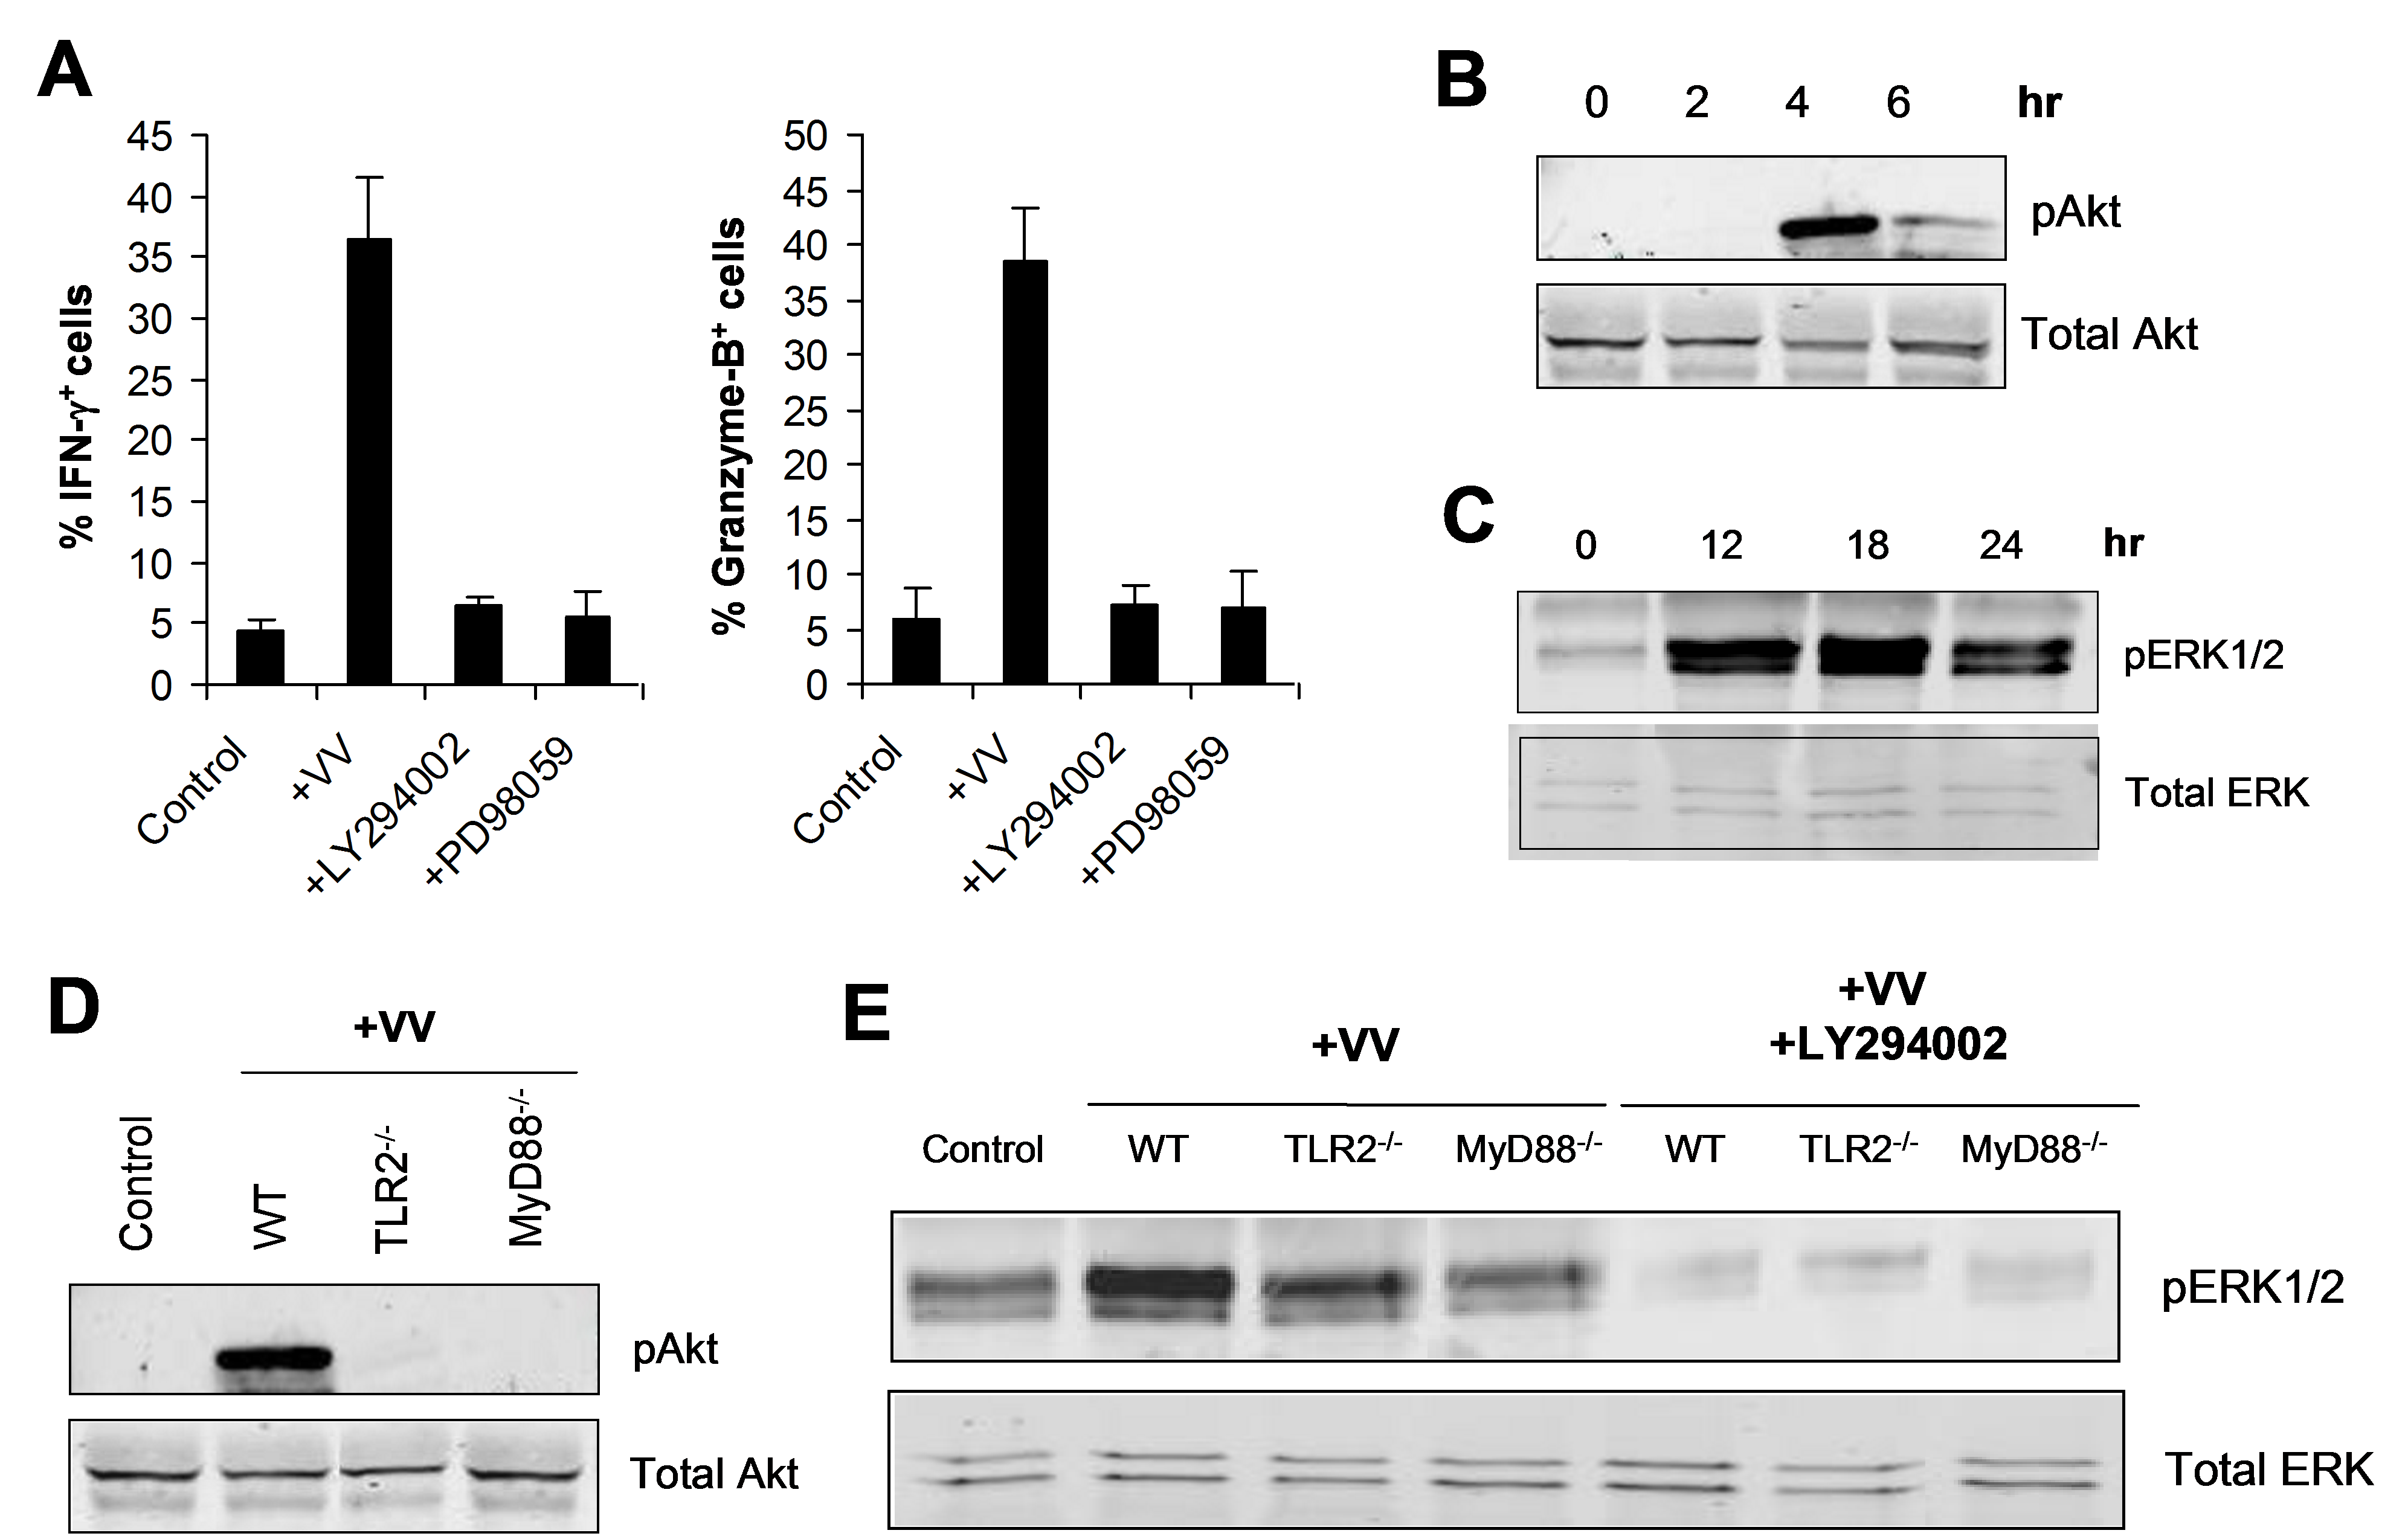 TLR2-dependent activation of NK cells by VV is mediated by PI3K and ERK.